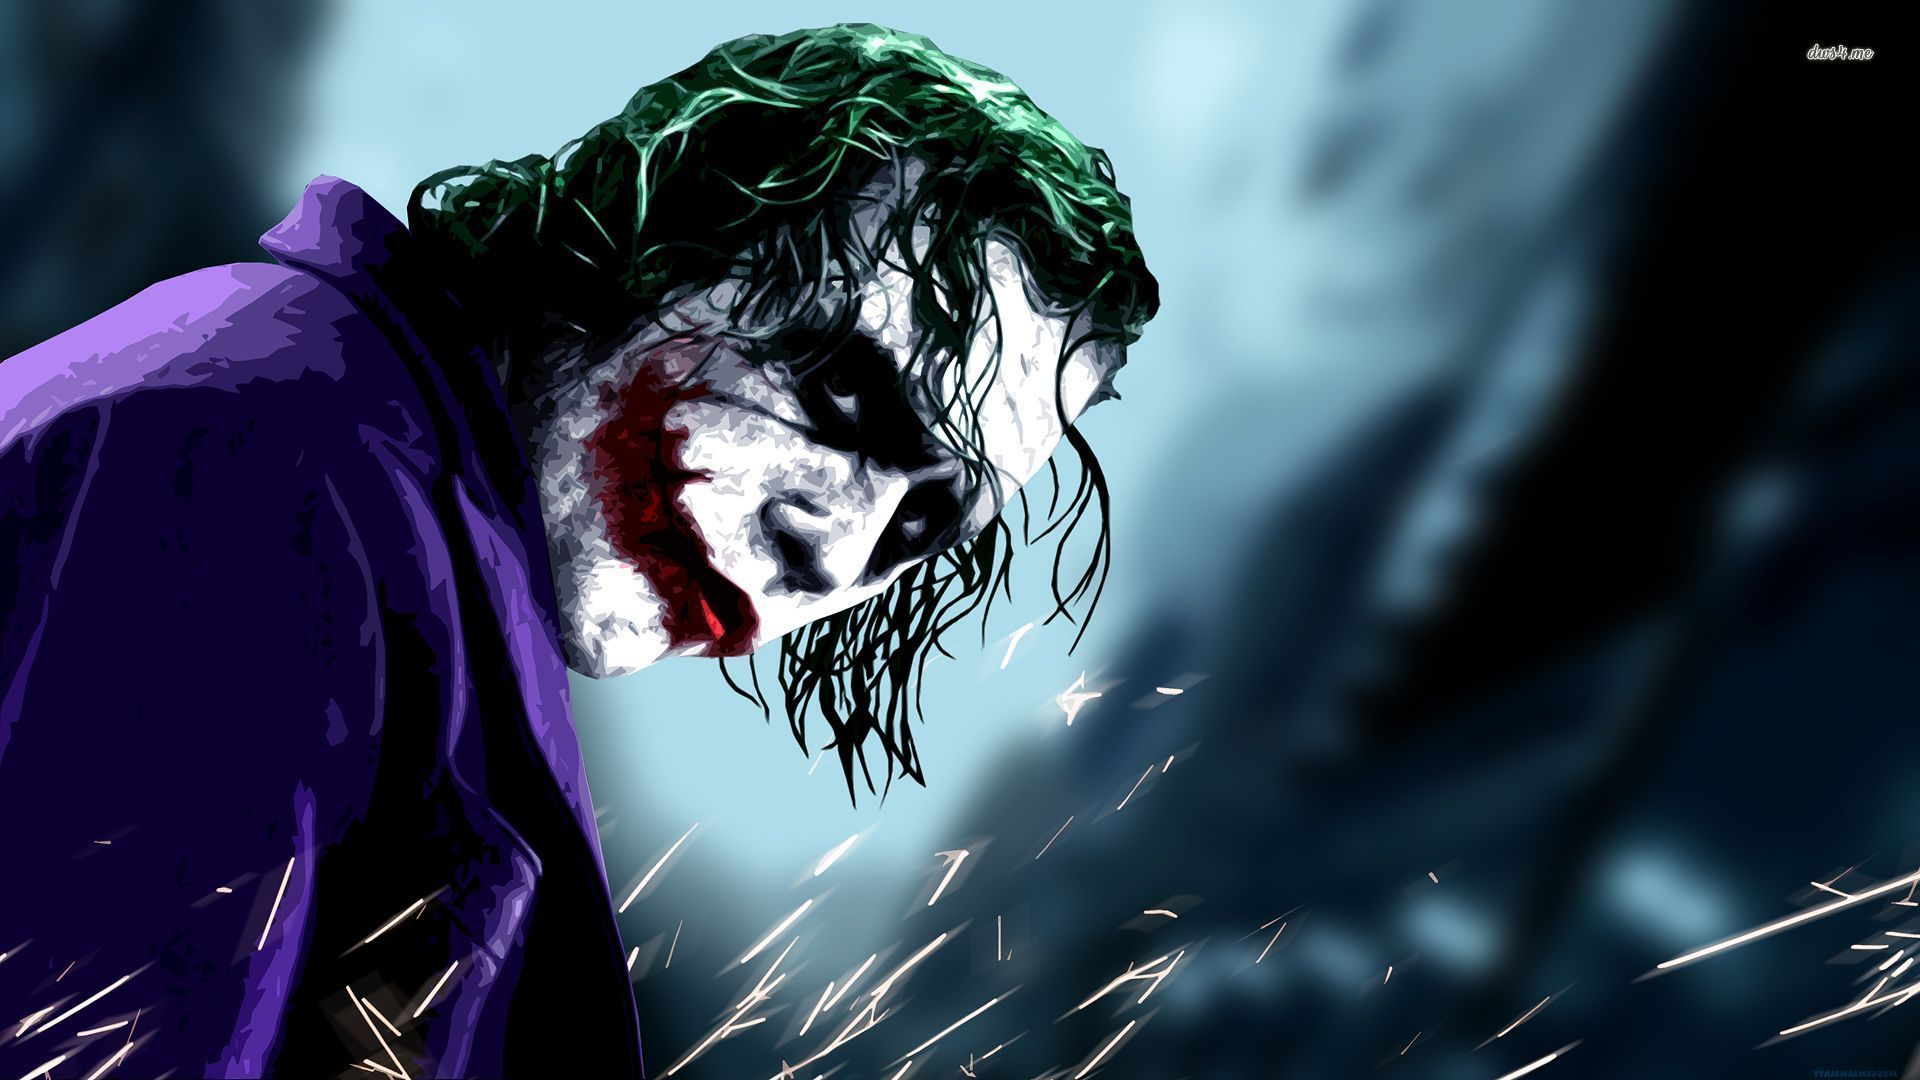 joker hd wallpapers 1080p joker pinterest joker and hd wallpaper